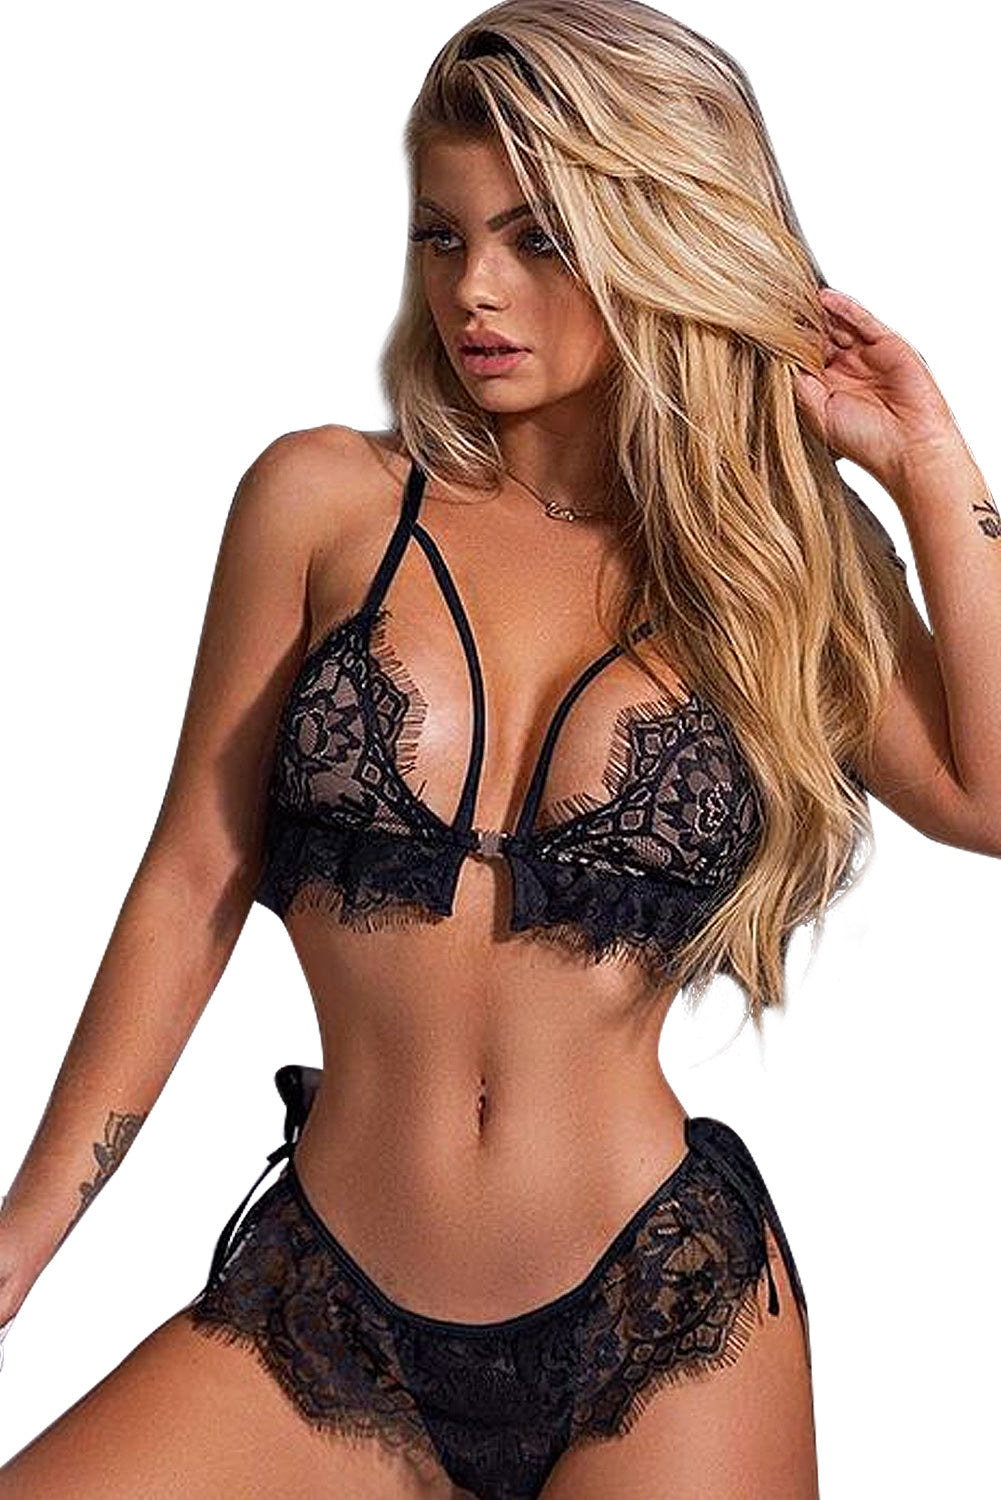 Black Lingerie Eyelash Trim Lace Her Fashion Charming Bralette Set